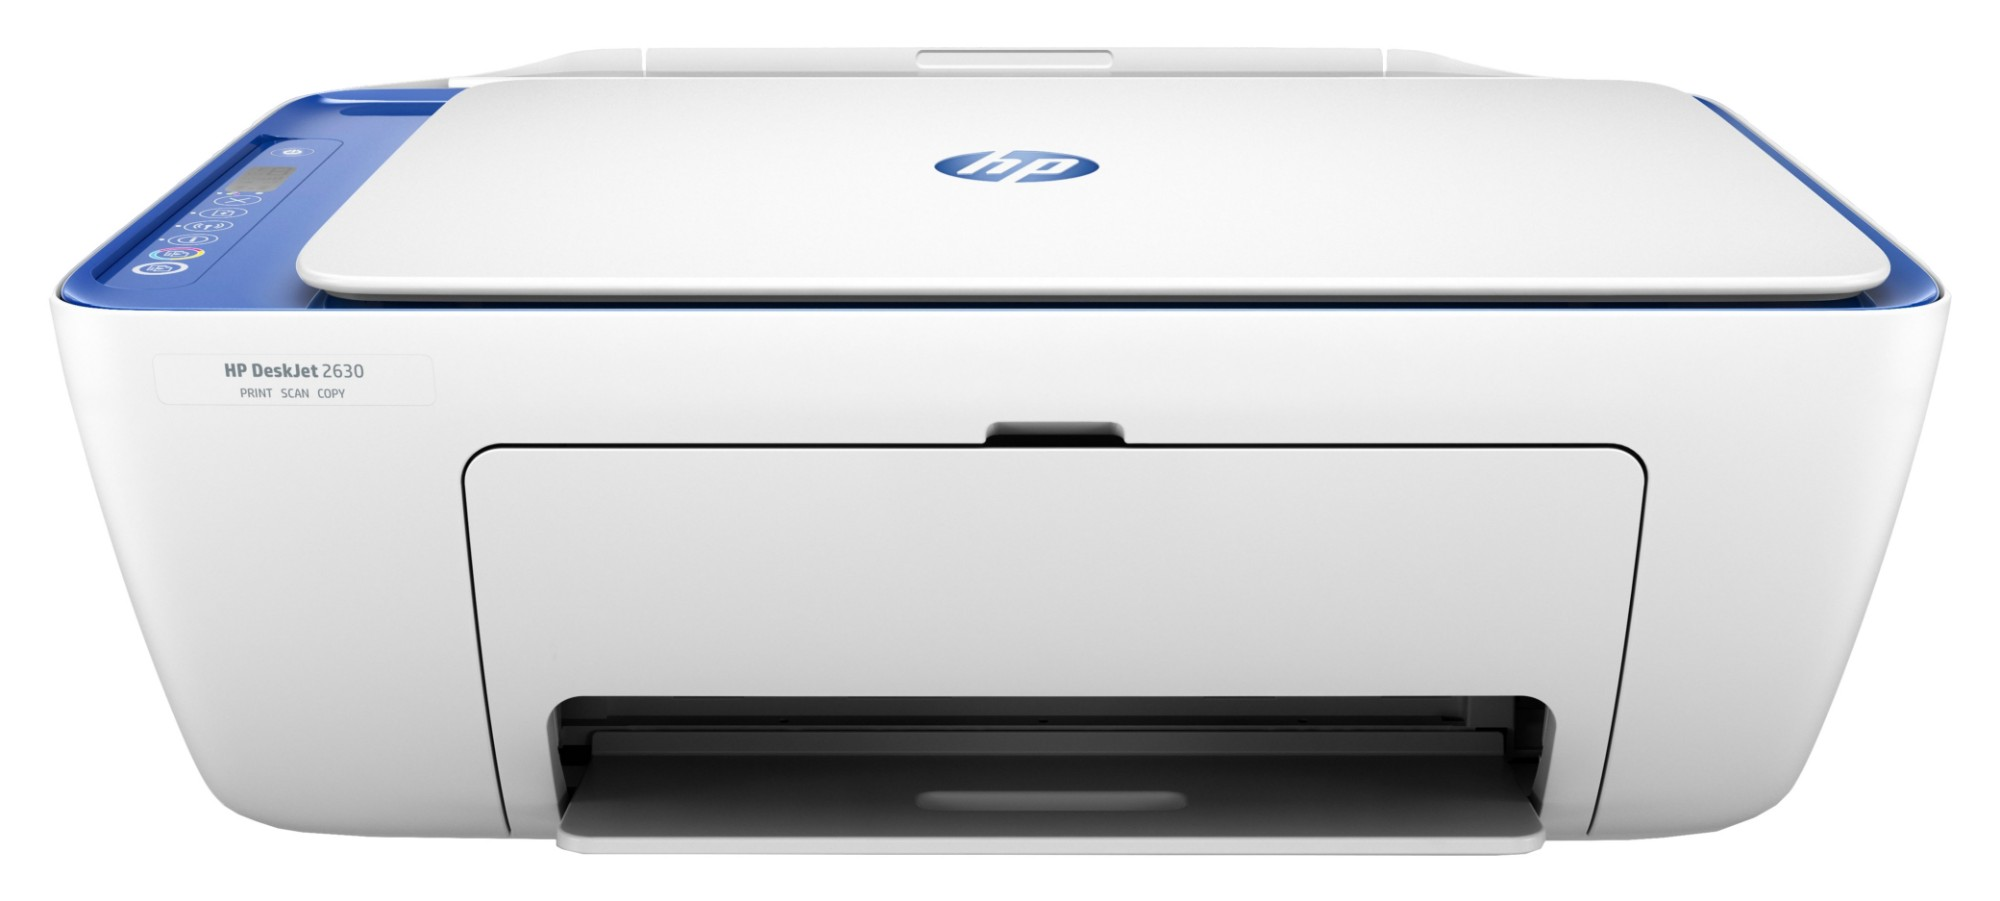 HP DeskJet 2630 4800 x 1200DPI Thermal Inkjet A4 7.5ppm Wi-Fi